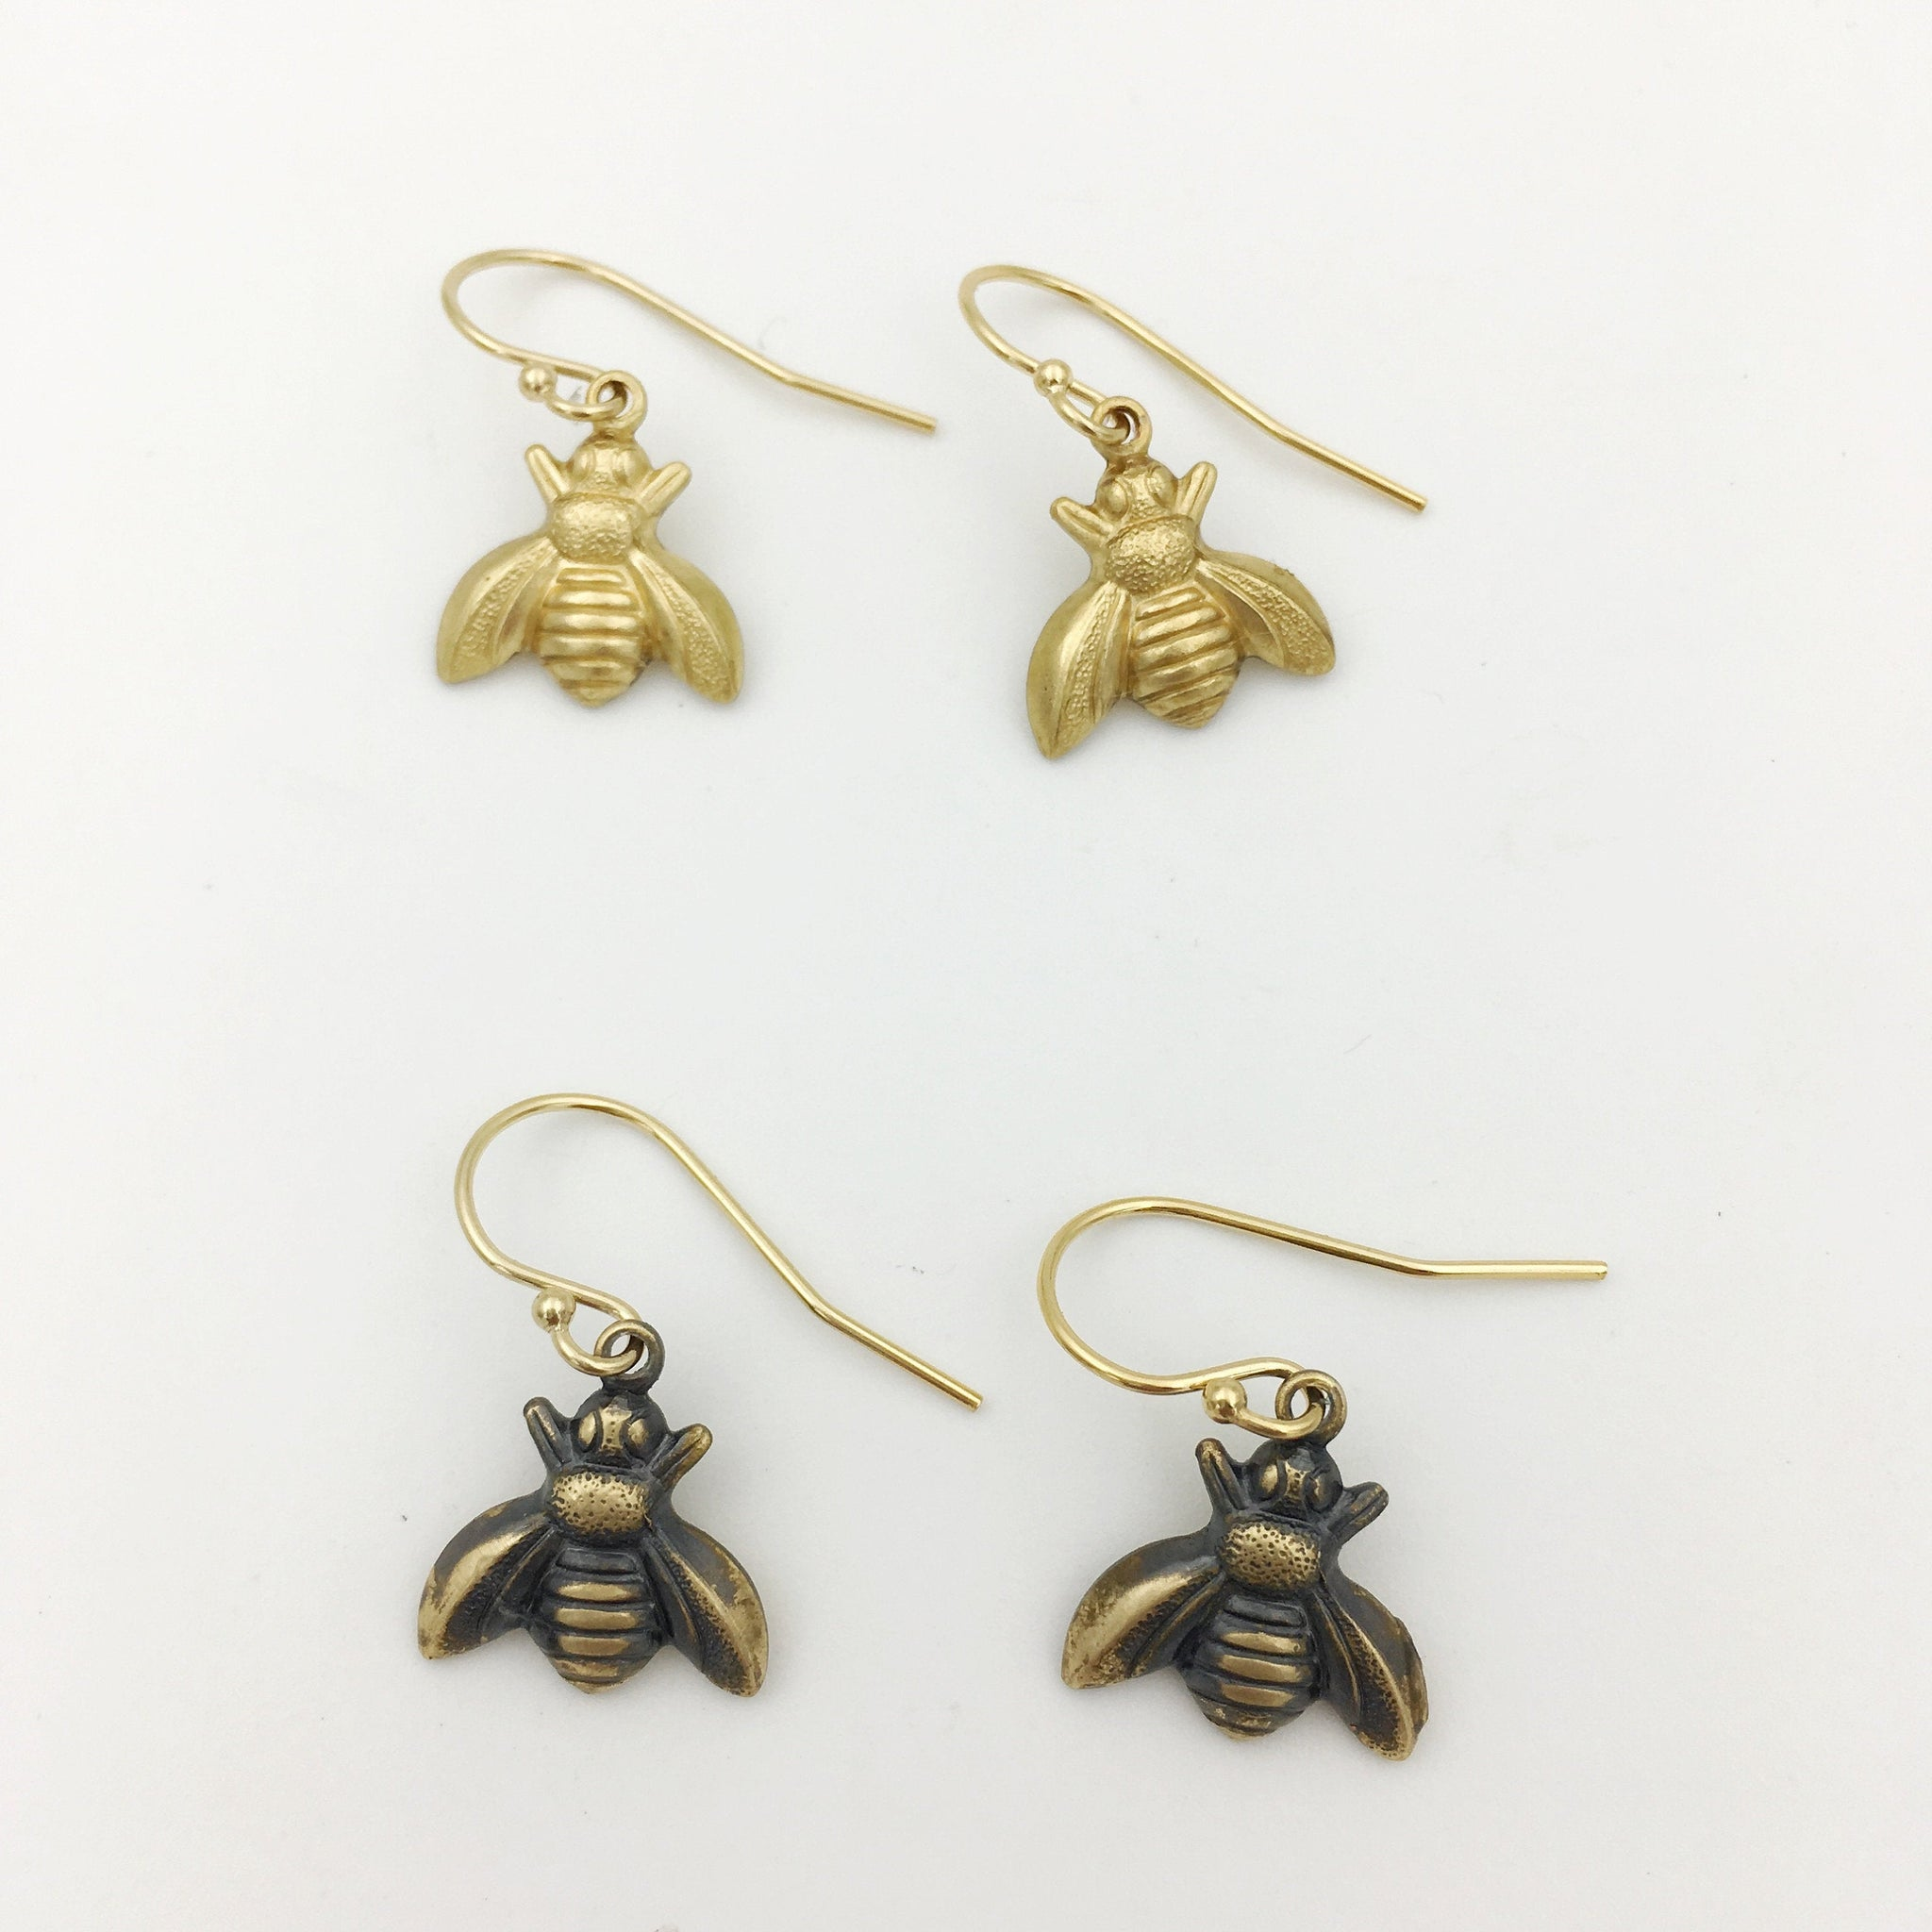 Brass and Gold Honeybee Insect Dangle Earrings